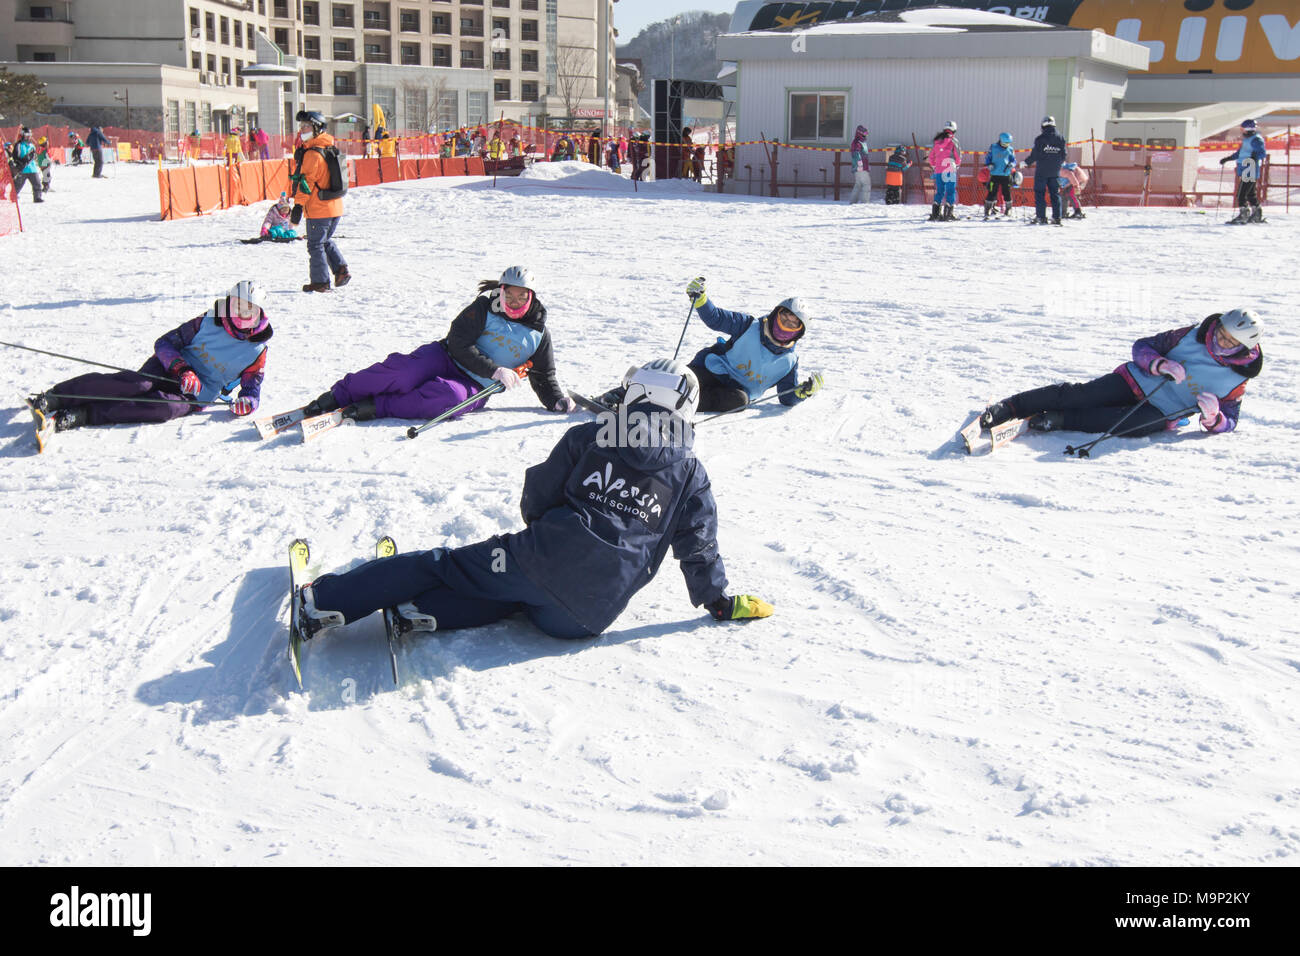 Four women are being taught how to stand up after falling while skiing, in the Alpensia resort in the Gangwon-do region of South Korea.  The Alpensia Resort is a ski resort and a tourist attraction. It is located on the territory of the township of Daegwallyeong-myeon, in the county of Pyeongchang, hosting the Winter Olympics in February 2018.  The ski resort is approximately 2.5 hours from Seoul or Incheon Airport by car, predominantly all motorway.   Alpensia has six slopes for skiing and snowboarding, with runs up to 1.4 km (0.87 mi) long, for beginners and advanced skiers, and an area - Stock Image